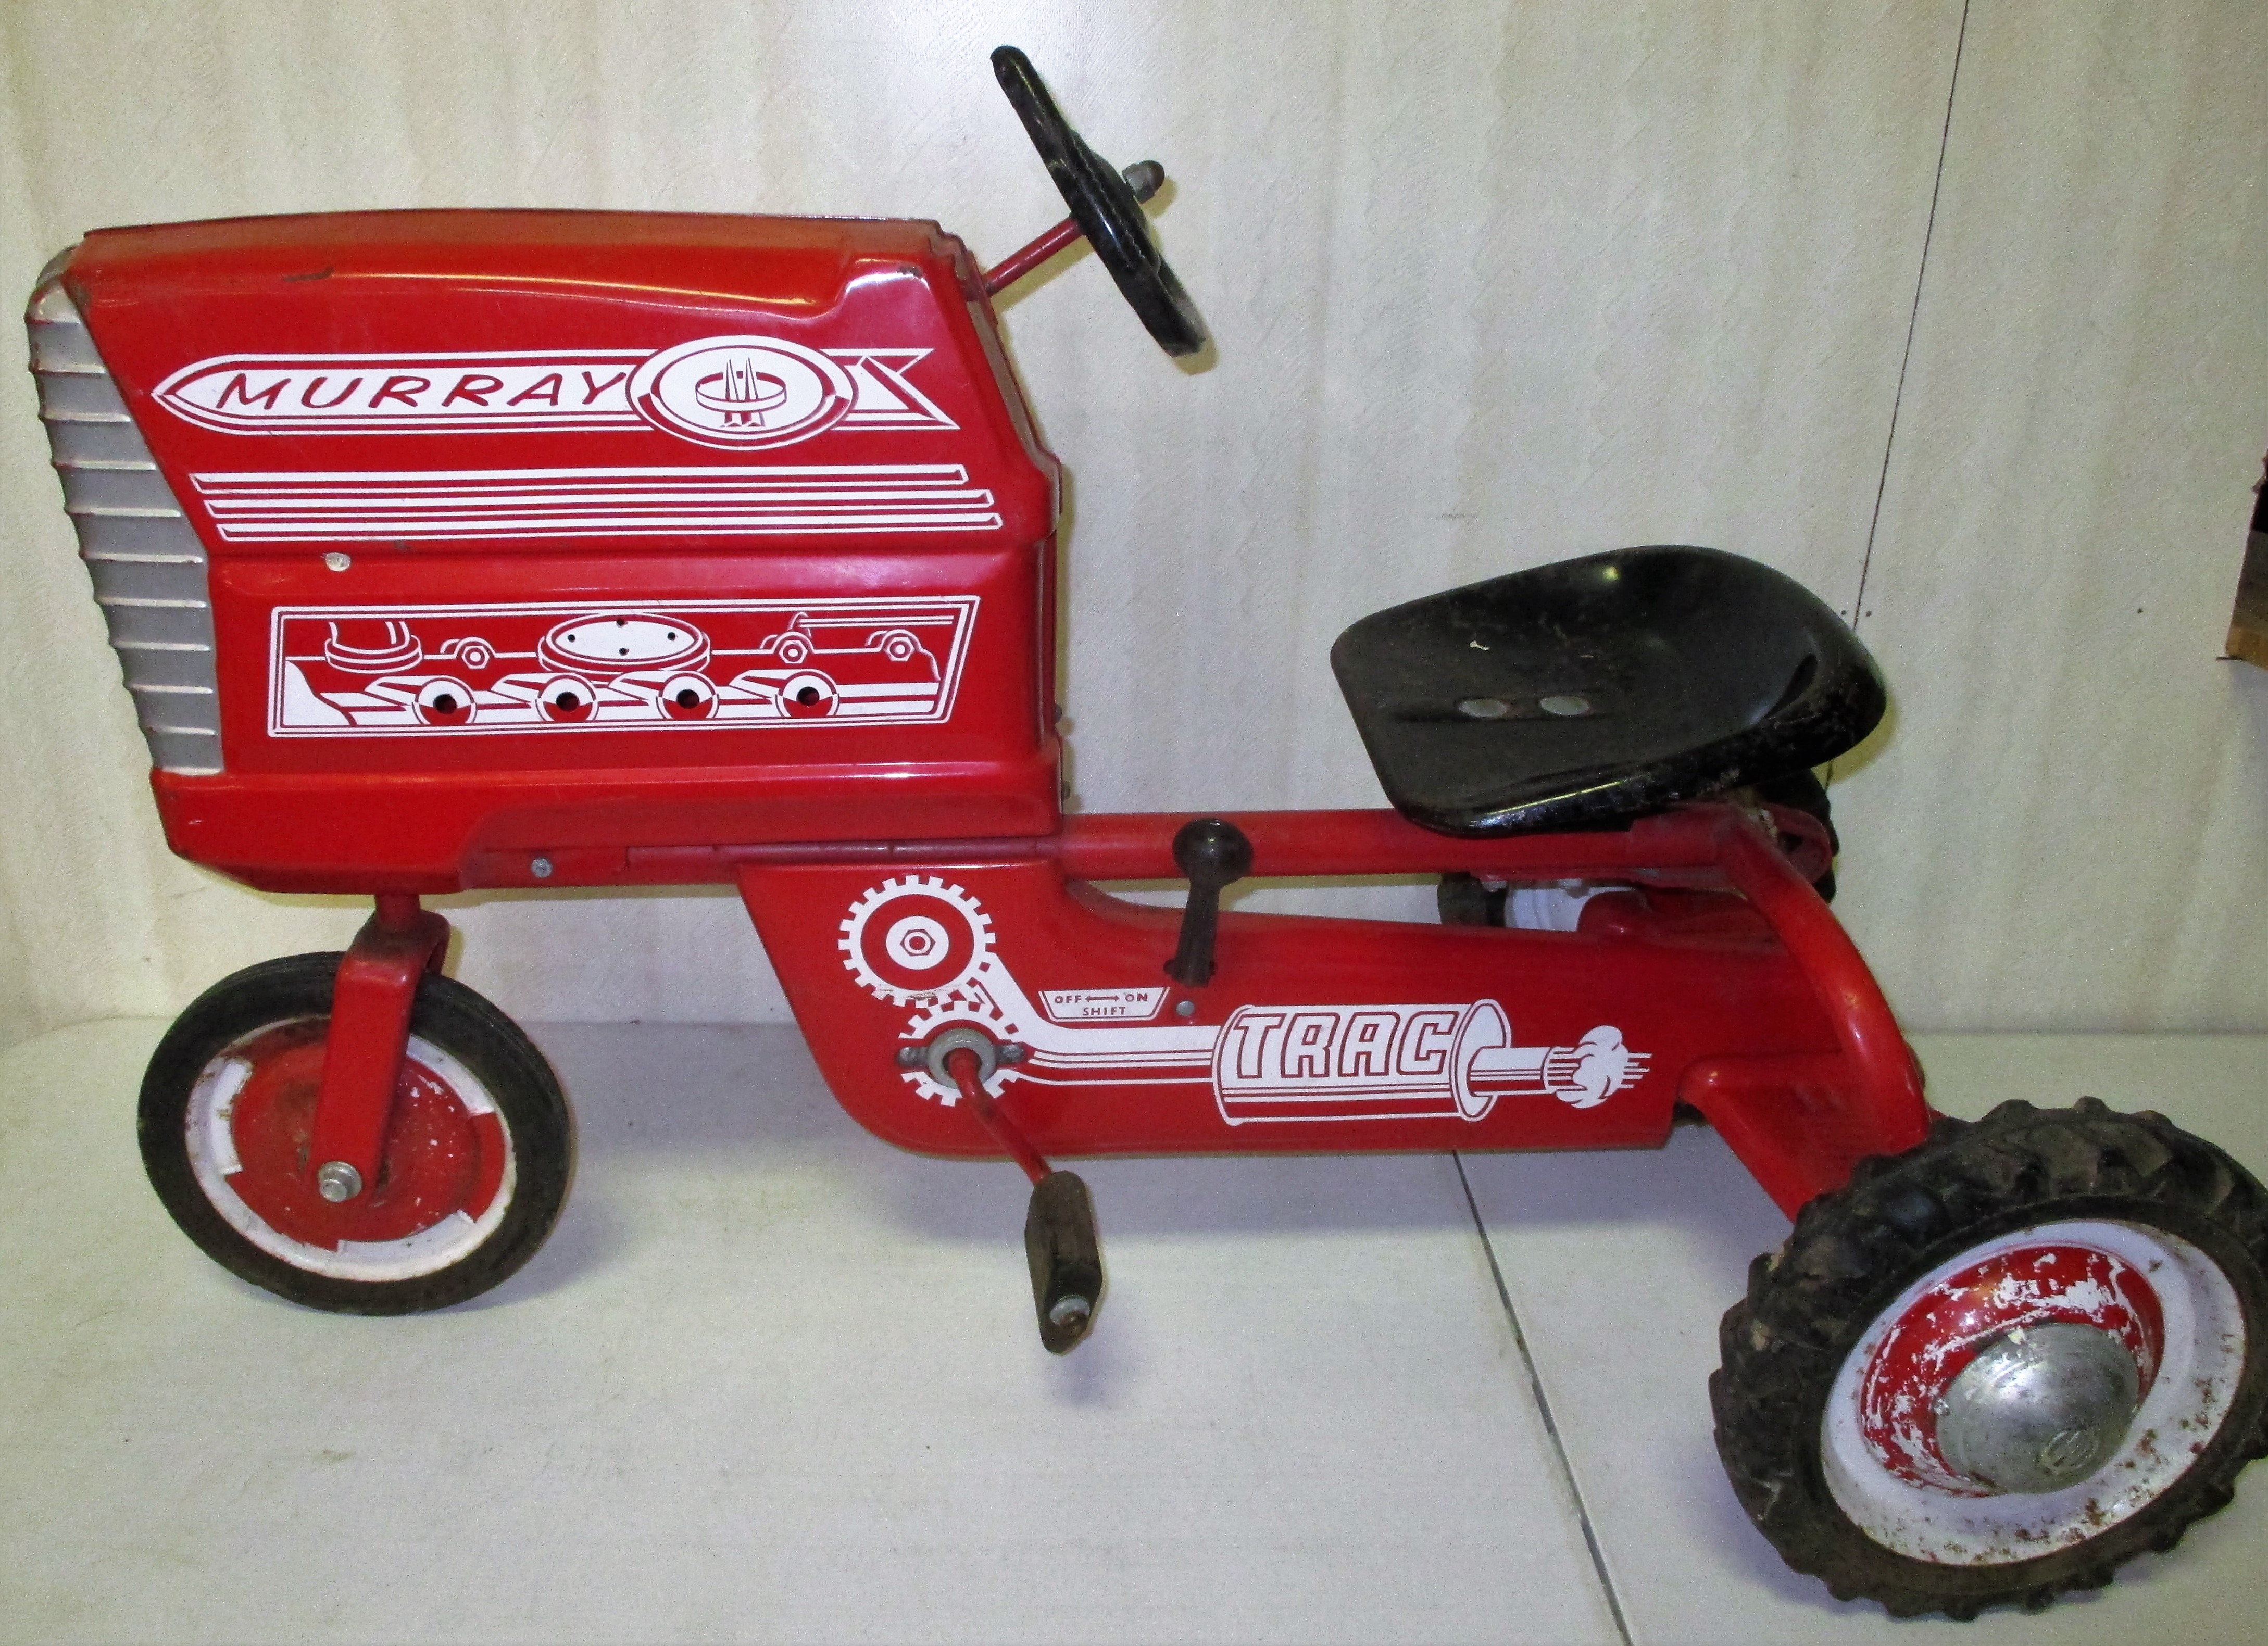 95: Murray Pedal Tractor